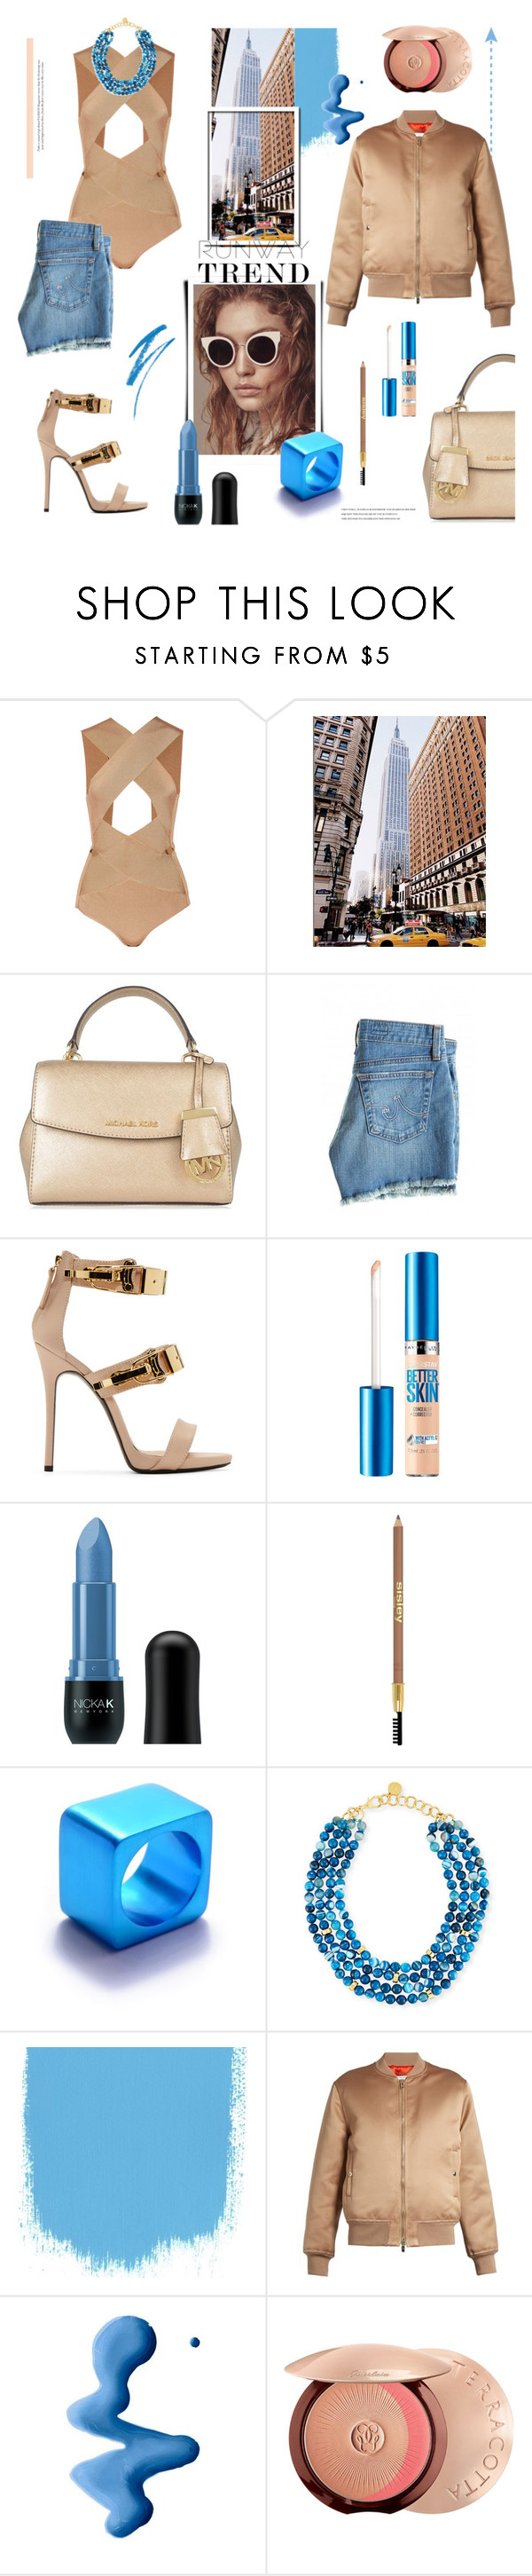 """""""Runway Trend"""" by tinkabella222 ❤ liked on Polyvore featuring Balmain, MICHAEL Michael Kors, AG Adriano Goldschmied, Giuseppe Zanotti, Maybelline, Nicka K, Sisley, Filip Vanas, Nest and Givenchy"""